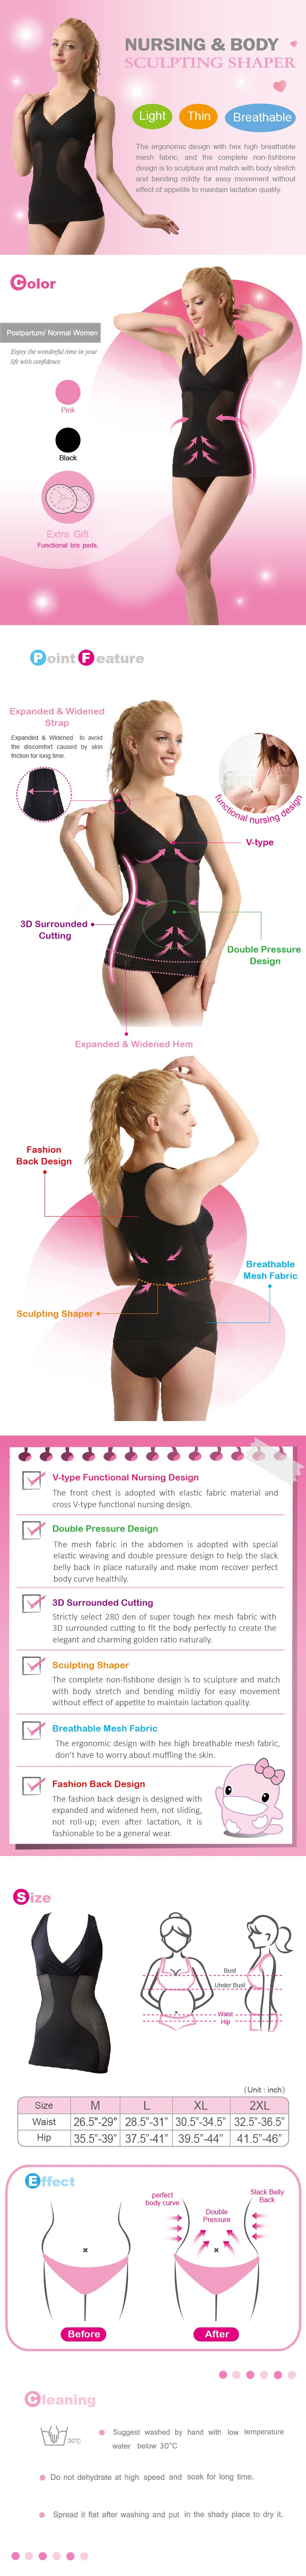 Kuku Duckbill S7503 Nursing & Body Sculpting Shaper